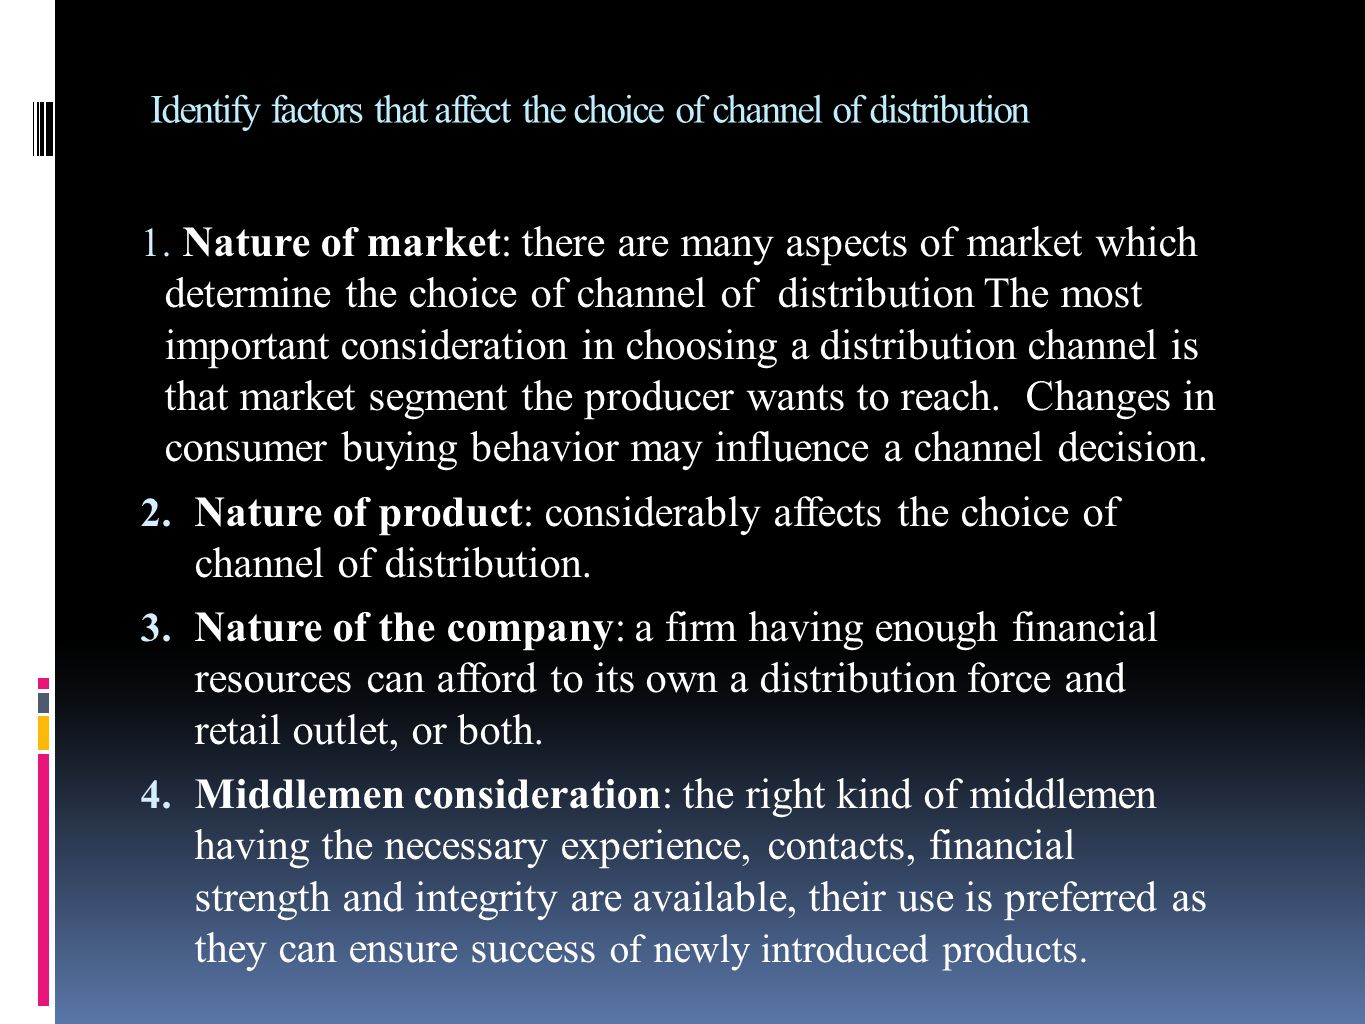 Identify factors that affect the choice of channel of distribution